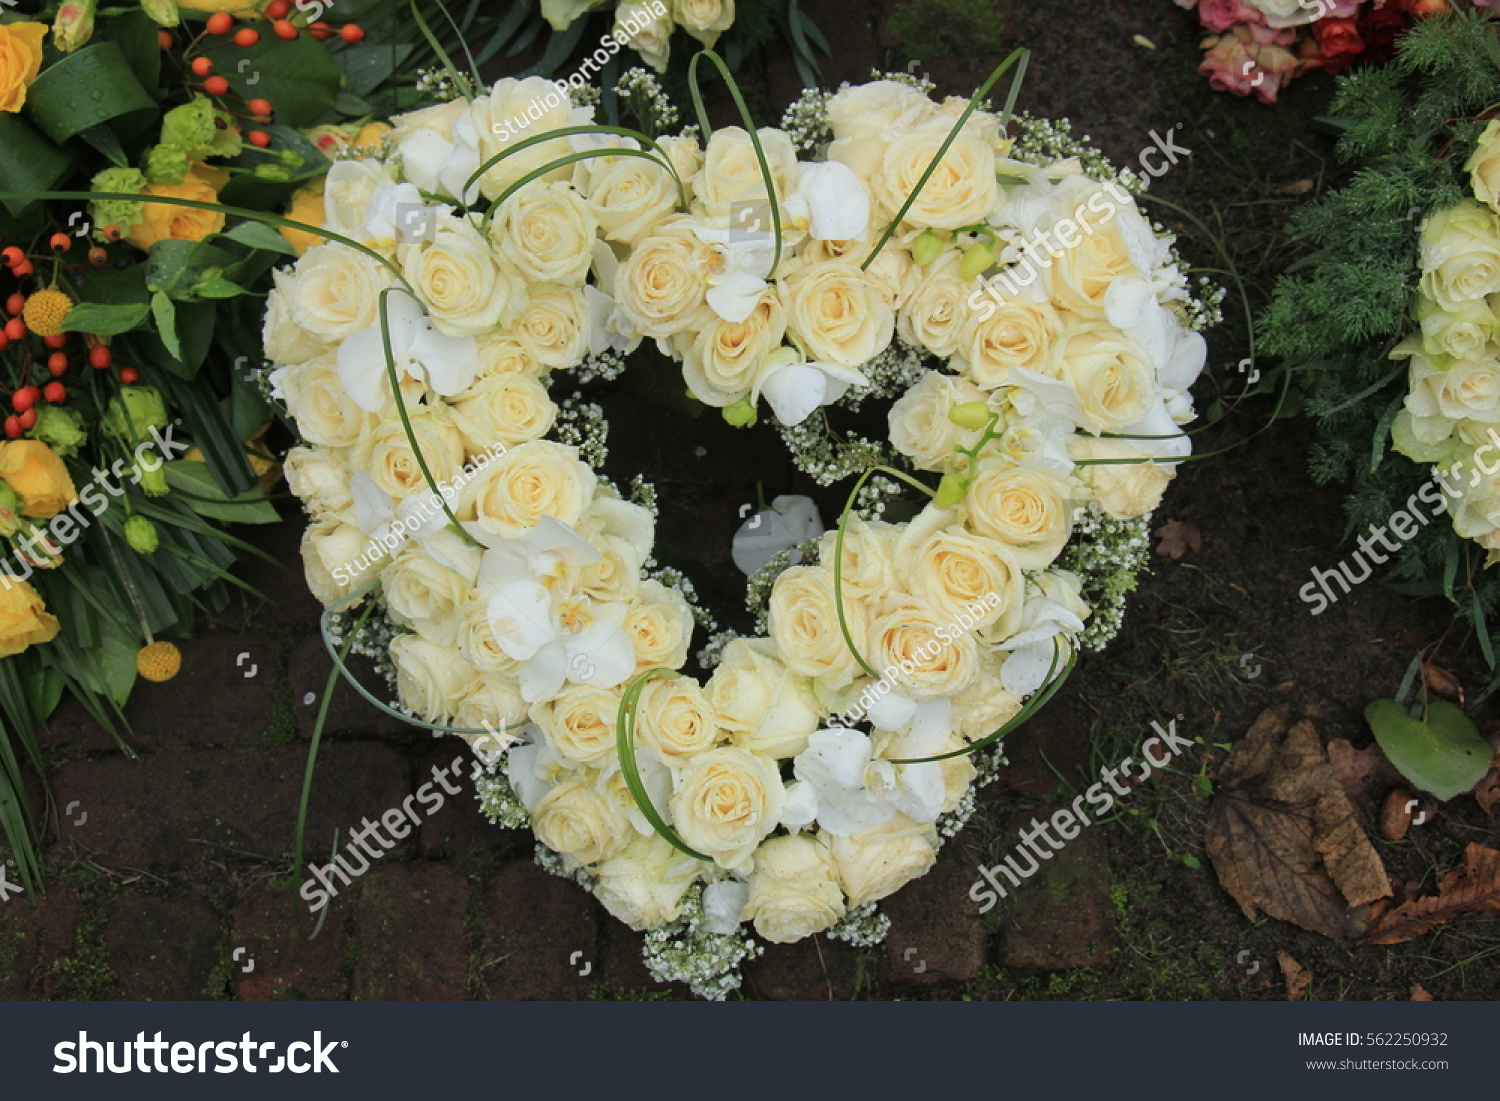 Heart shaped sympathy funeral flowers near stock photo 562250932 heart shaped sympathy or funeral flowers near a tree at a cemetery izmirmasajfo Gallery